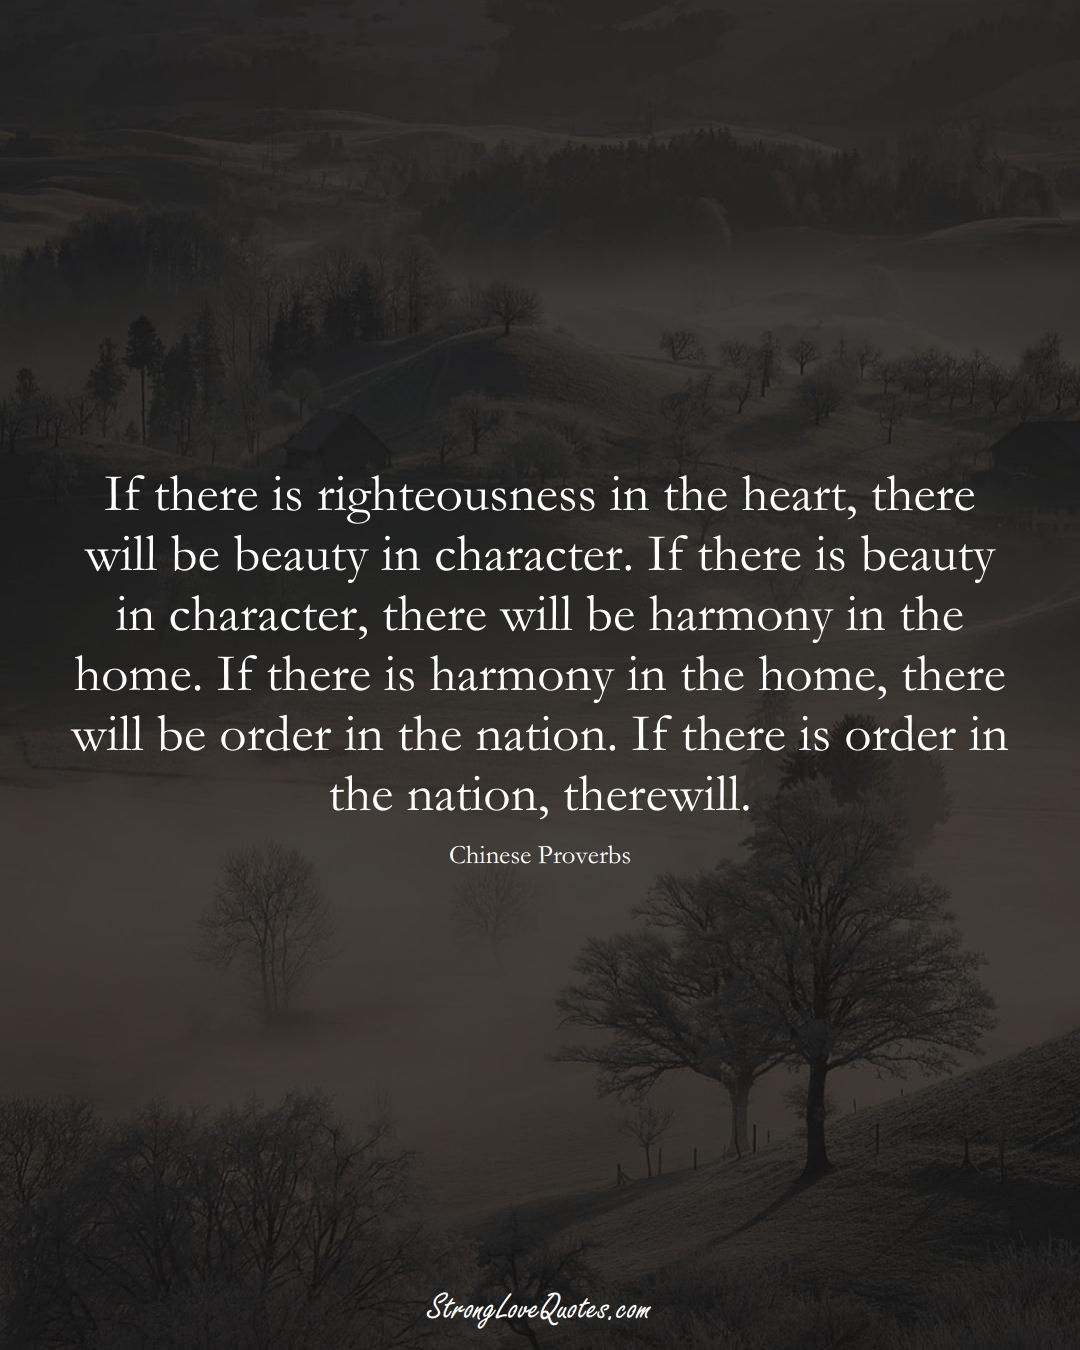 If there is righteousness in the heart, there will be beauty in character. If there is beauty in character, there will be harmony in the home. If there is harmony in the home, there will be order in the nation. If there is order in the nation, there will. (Chinese Sayings);  #AsianSayings